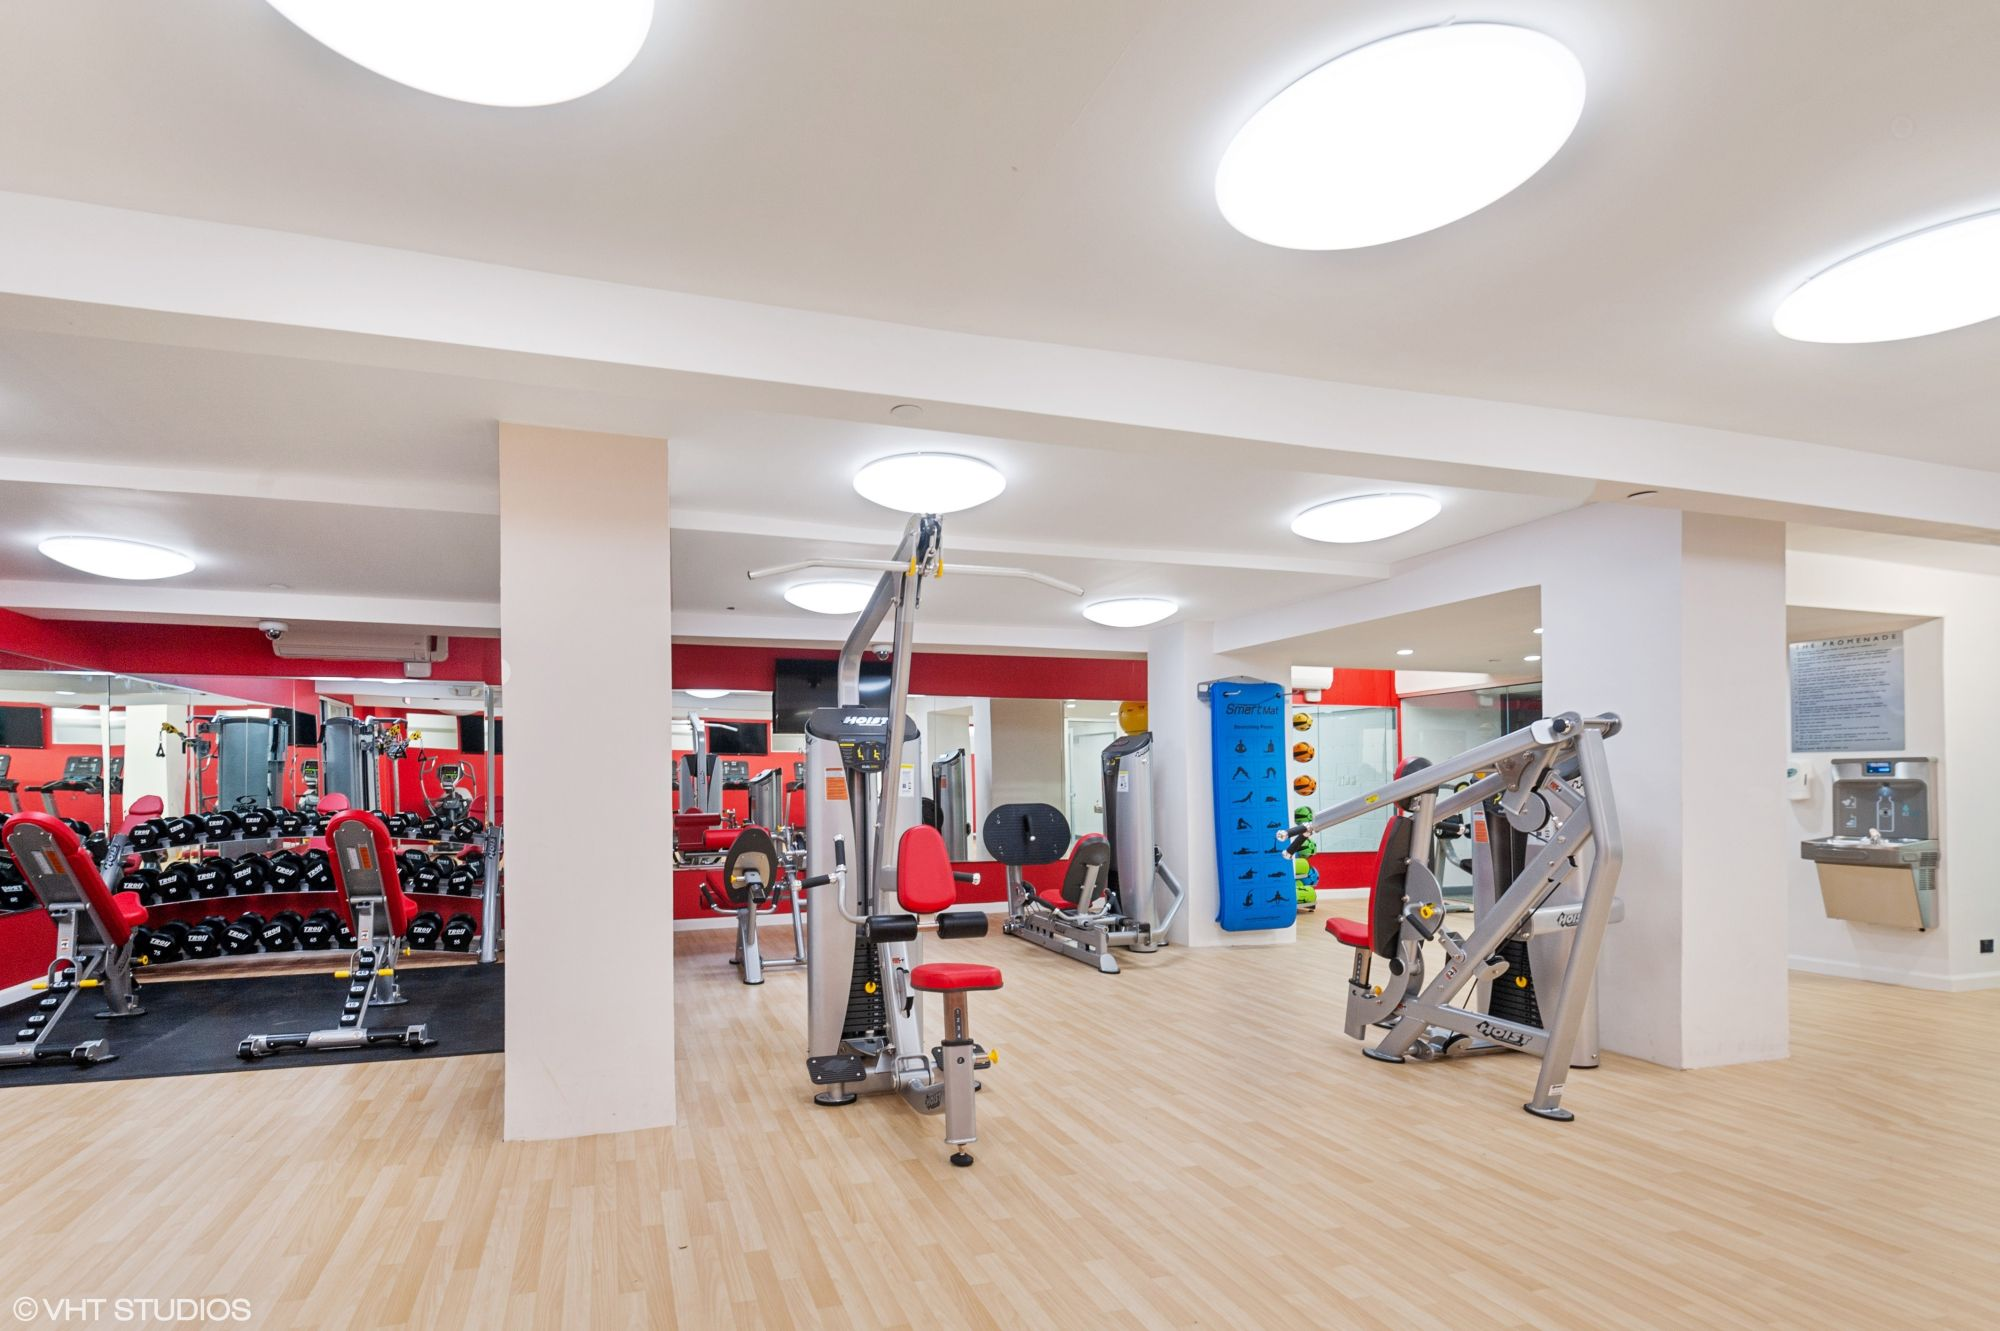 The fitness center at The Promenade, 150 West 225th Street, is newly renovated and has state-of-the-art strength machines & top-of-the-line free weights.